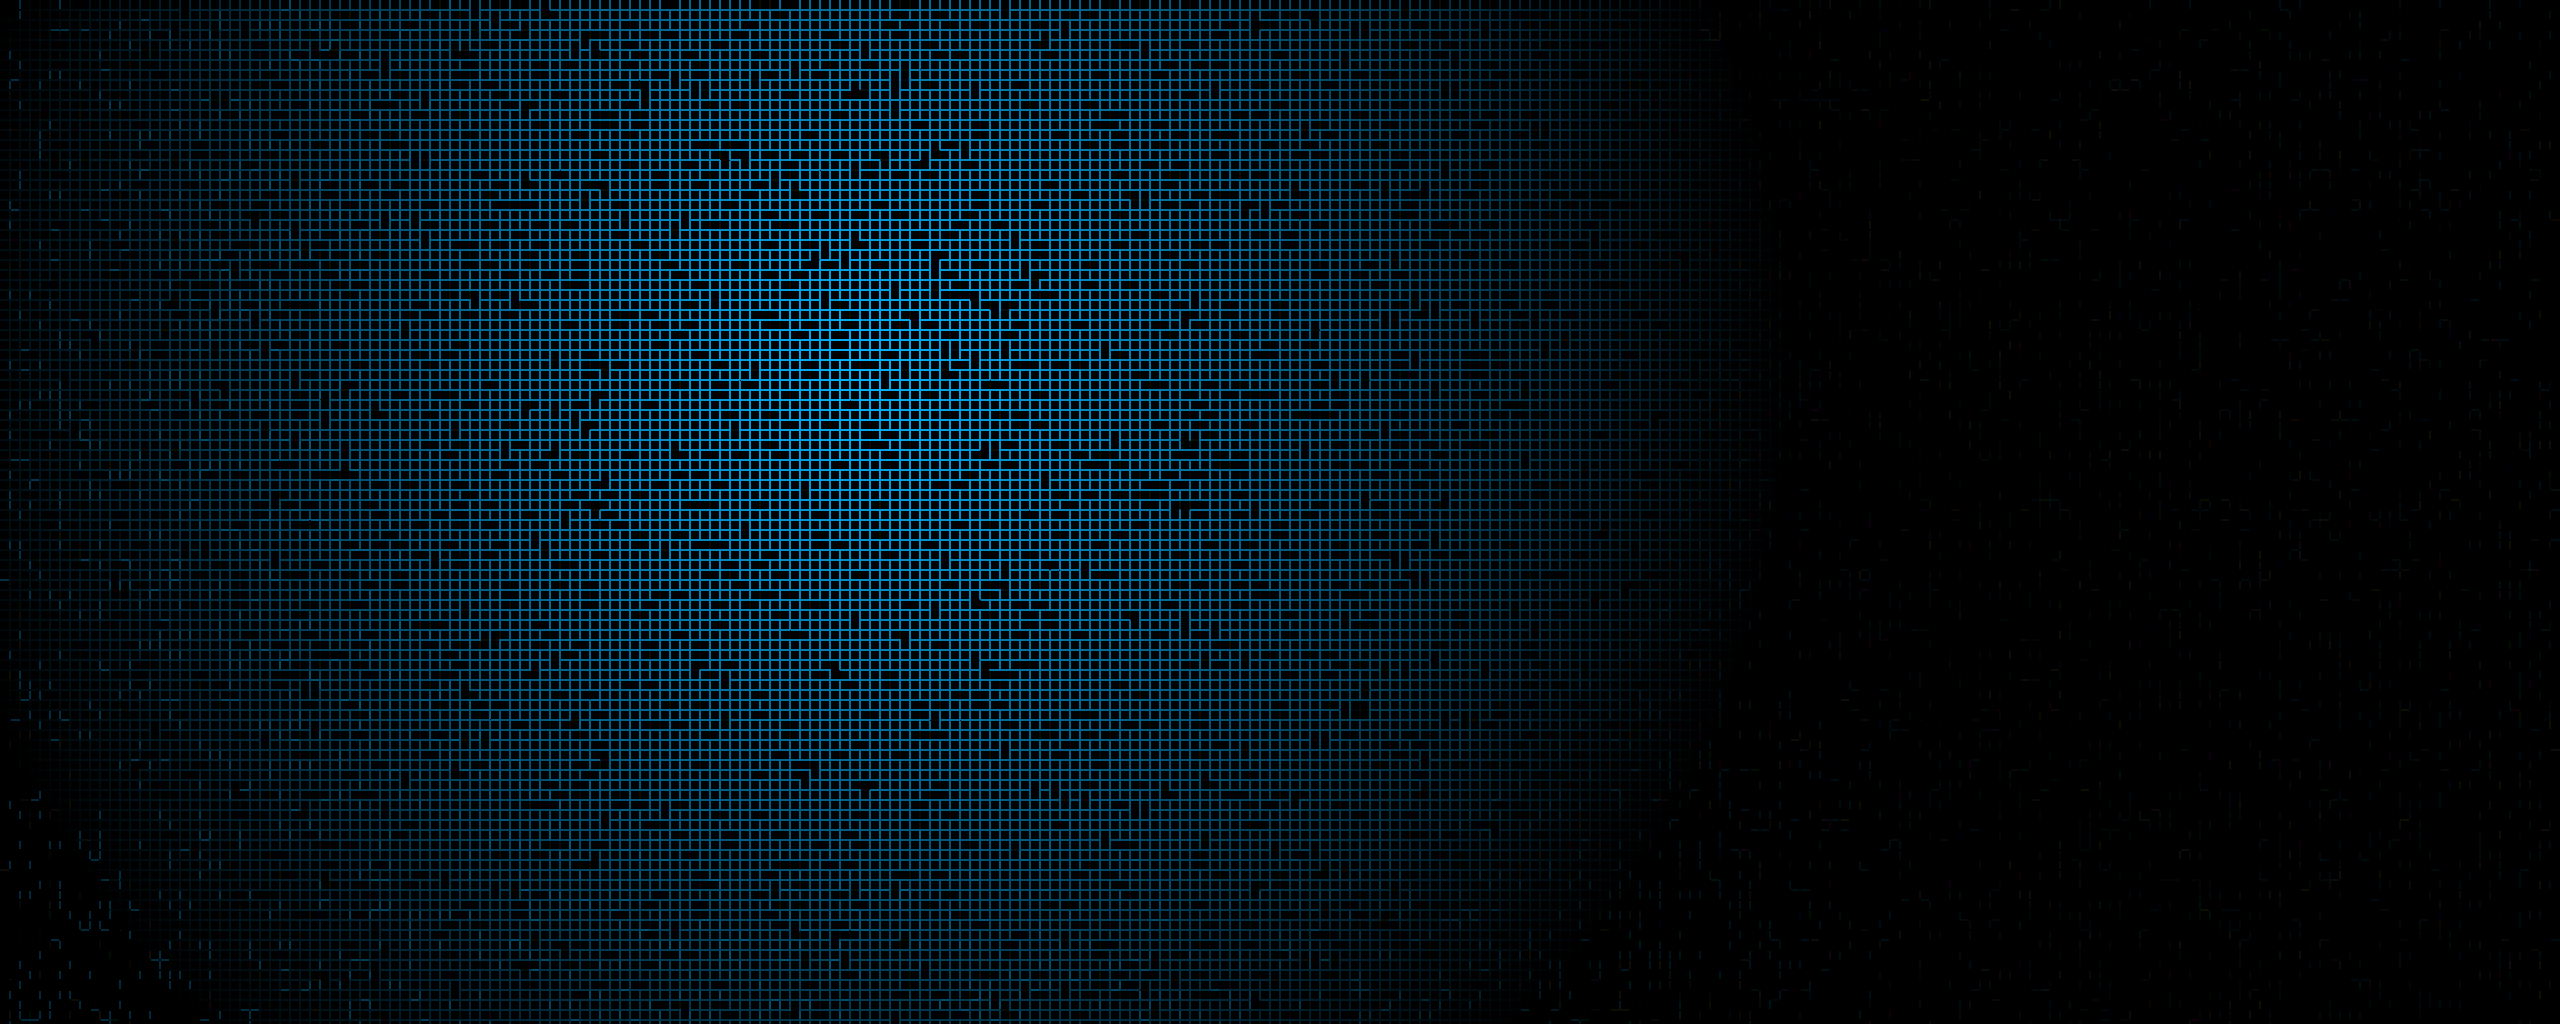 Blue Black Blocks Square large resolution wallpaper background 2560x1024